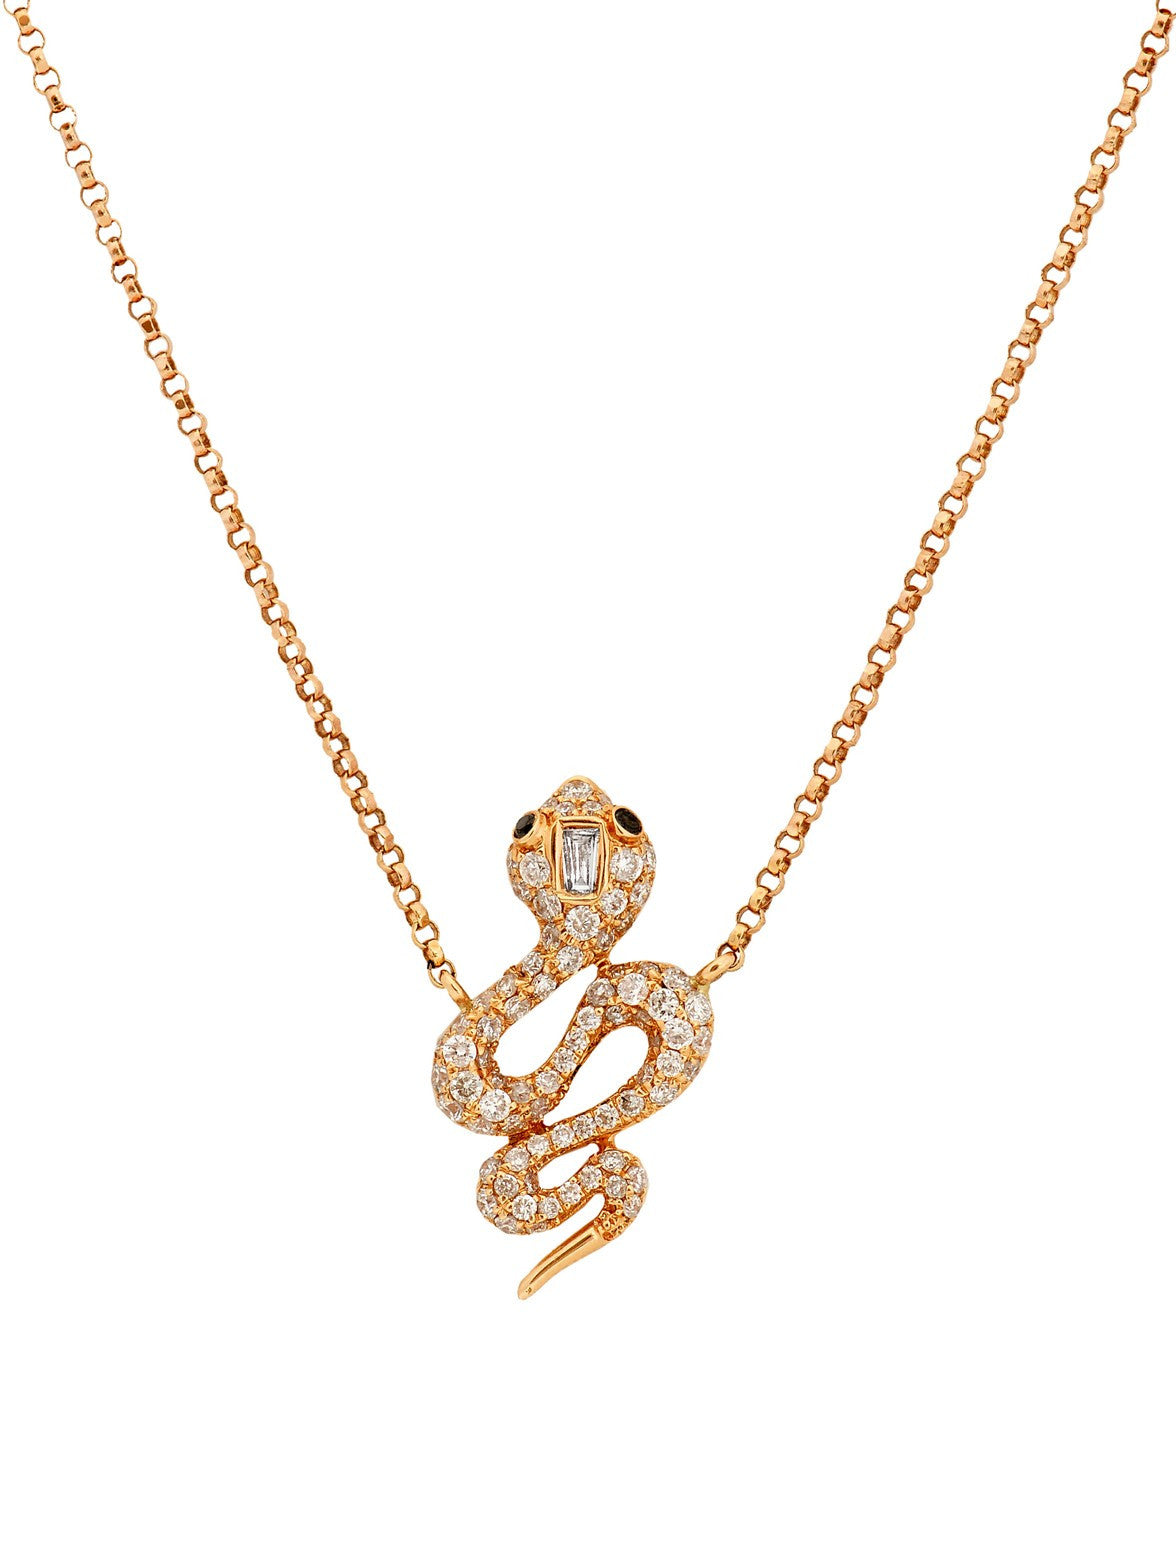 Rose Gold Diamond Snake Pendant Necklace - Ora by D'Amore Jewelers -  Necklace - Ora by D'Amore Jewelers